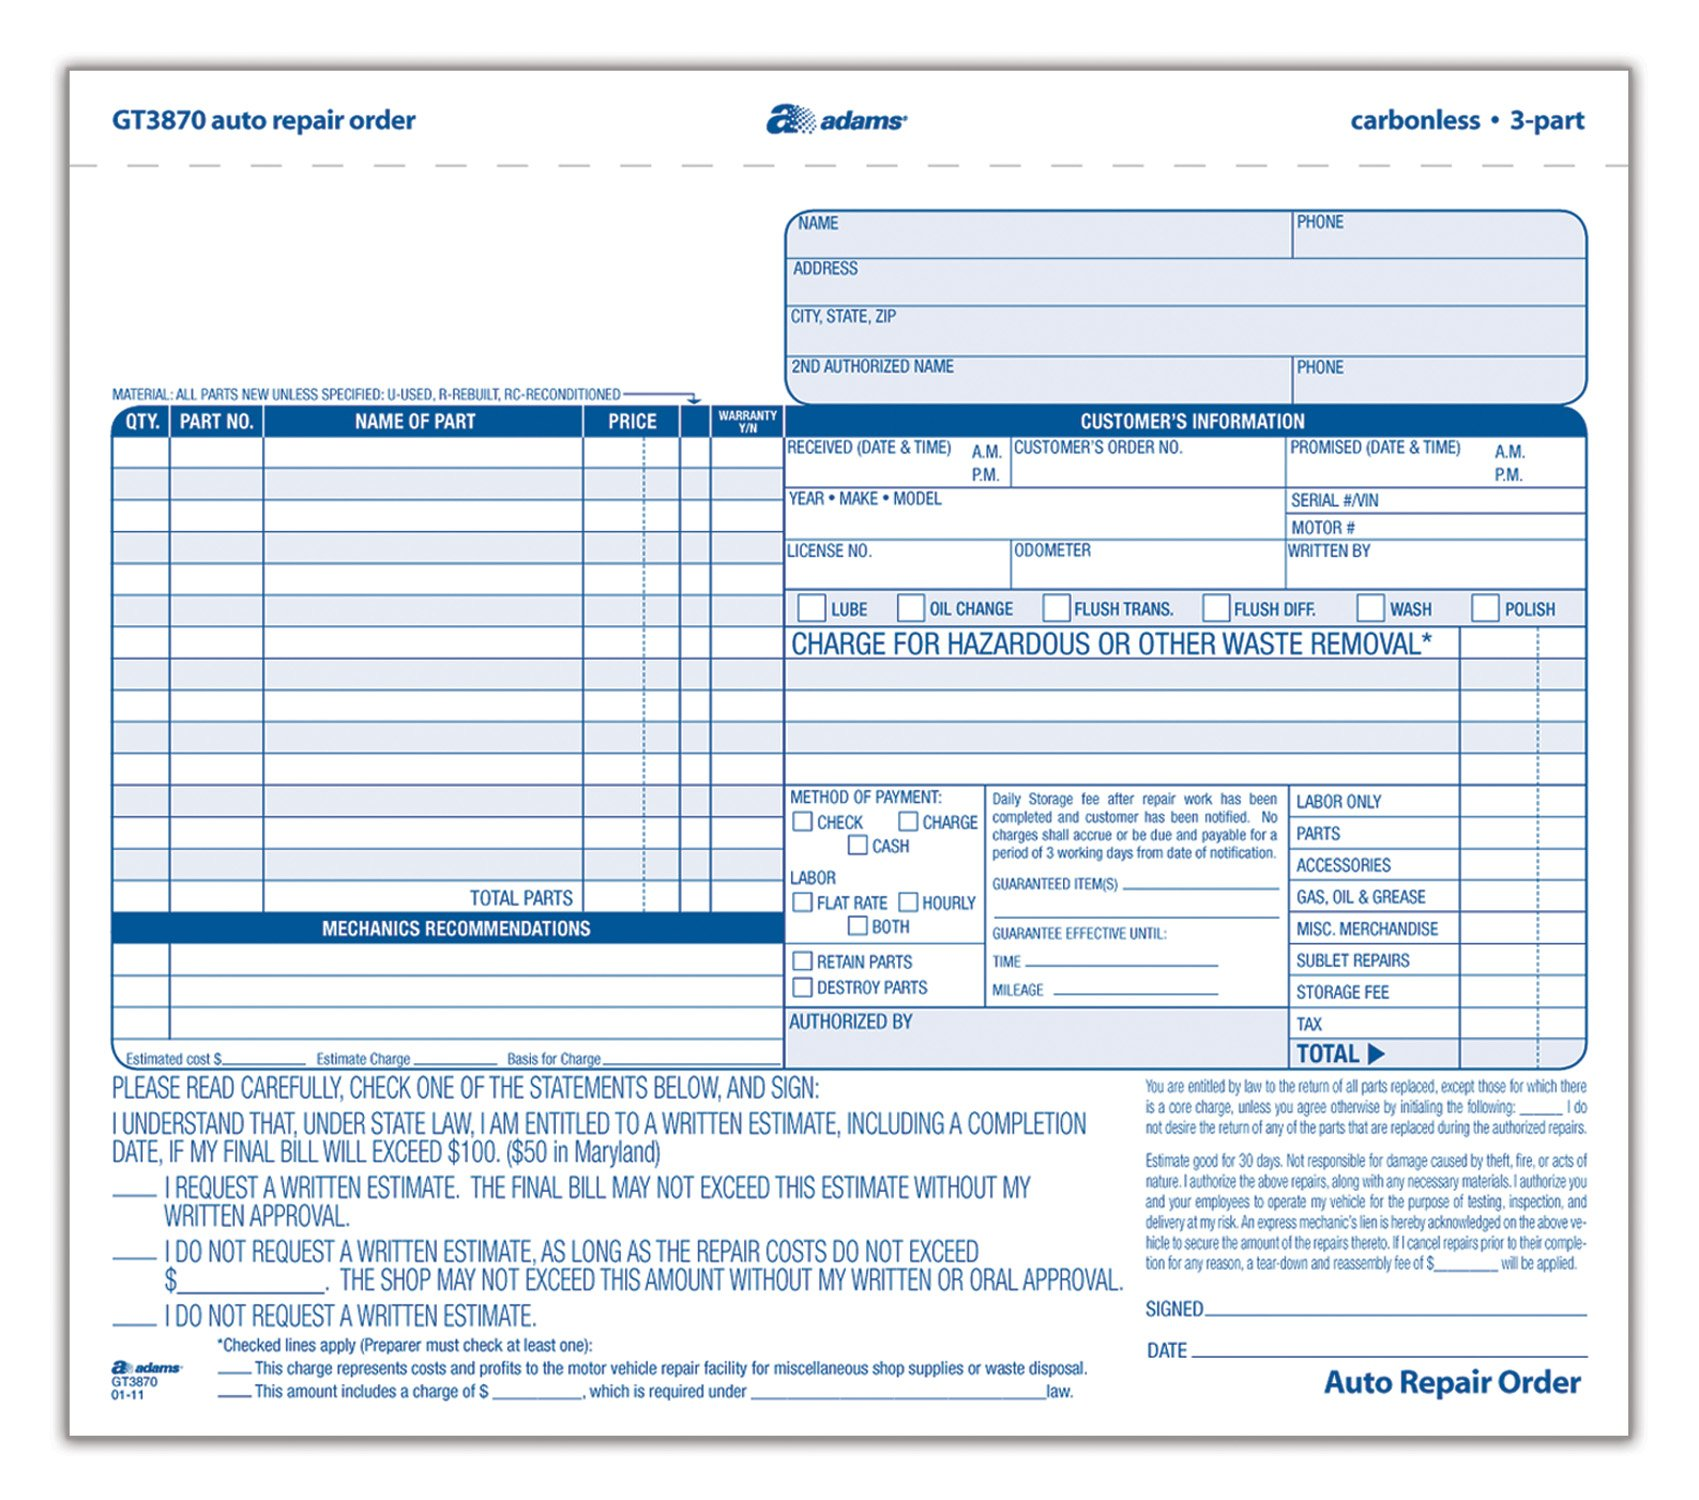 Best Rated In Sales Forms Invoice Forms Helpful Customer Reviews - What is invoice number on receipt online pet store